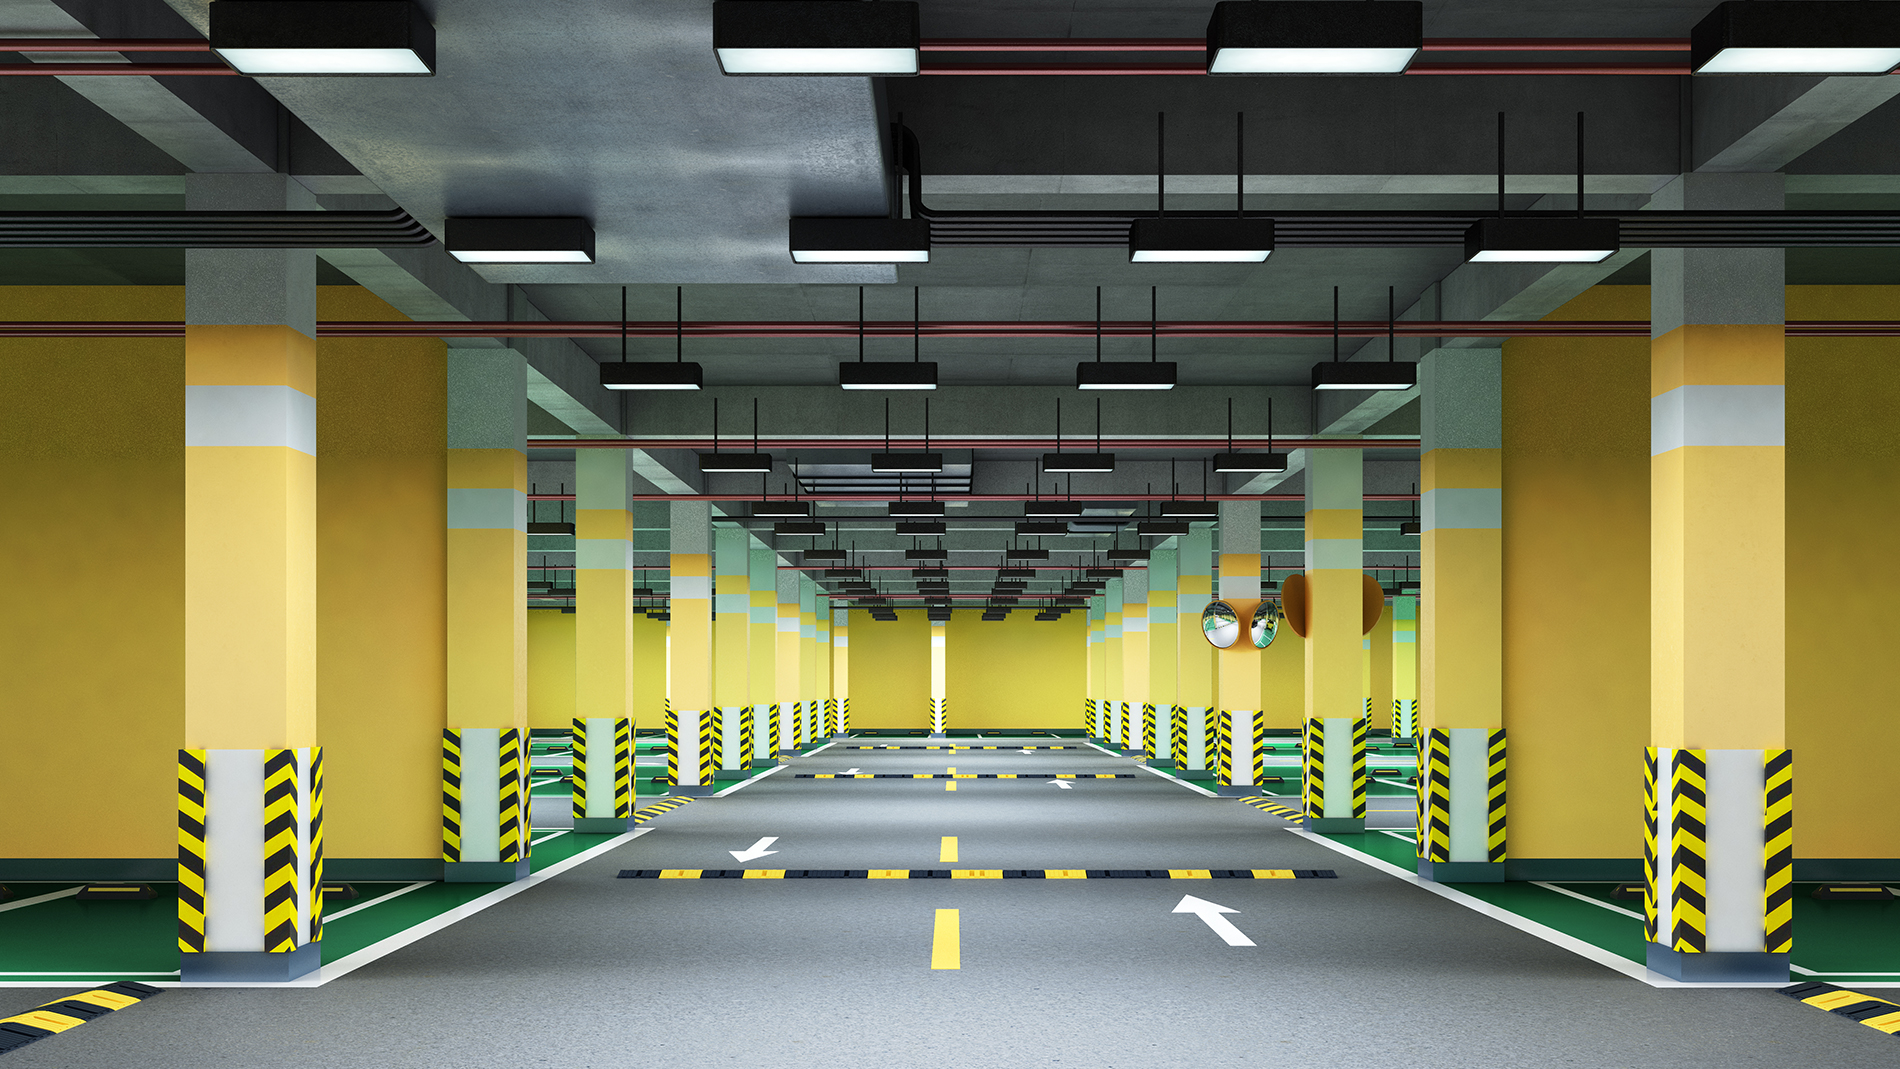 Parking Prolight + Sound Middle East